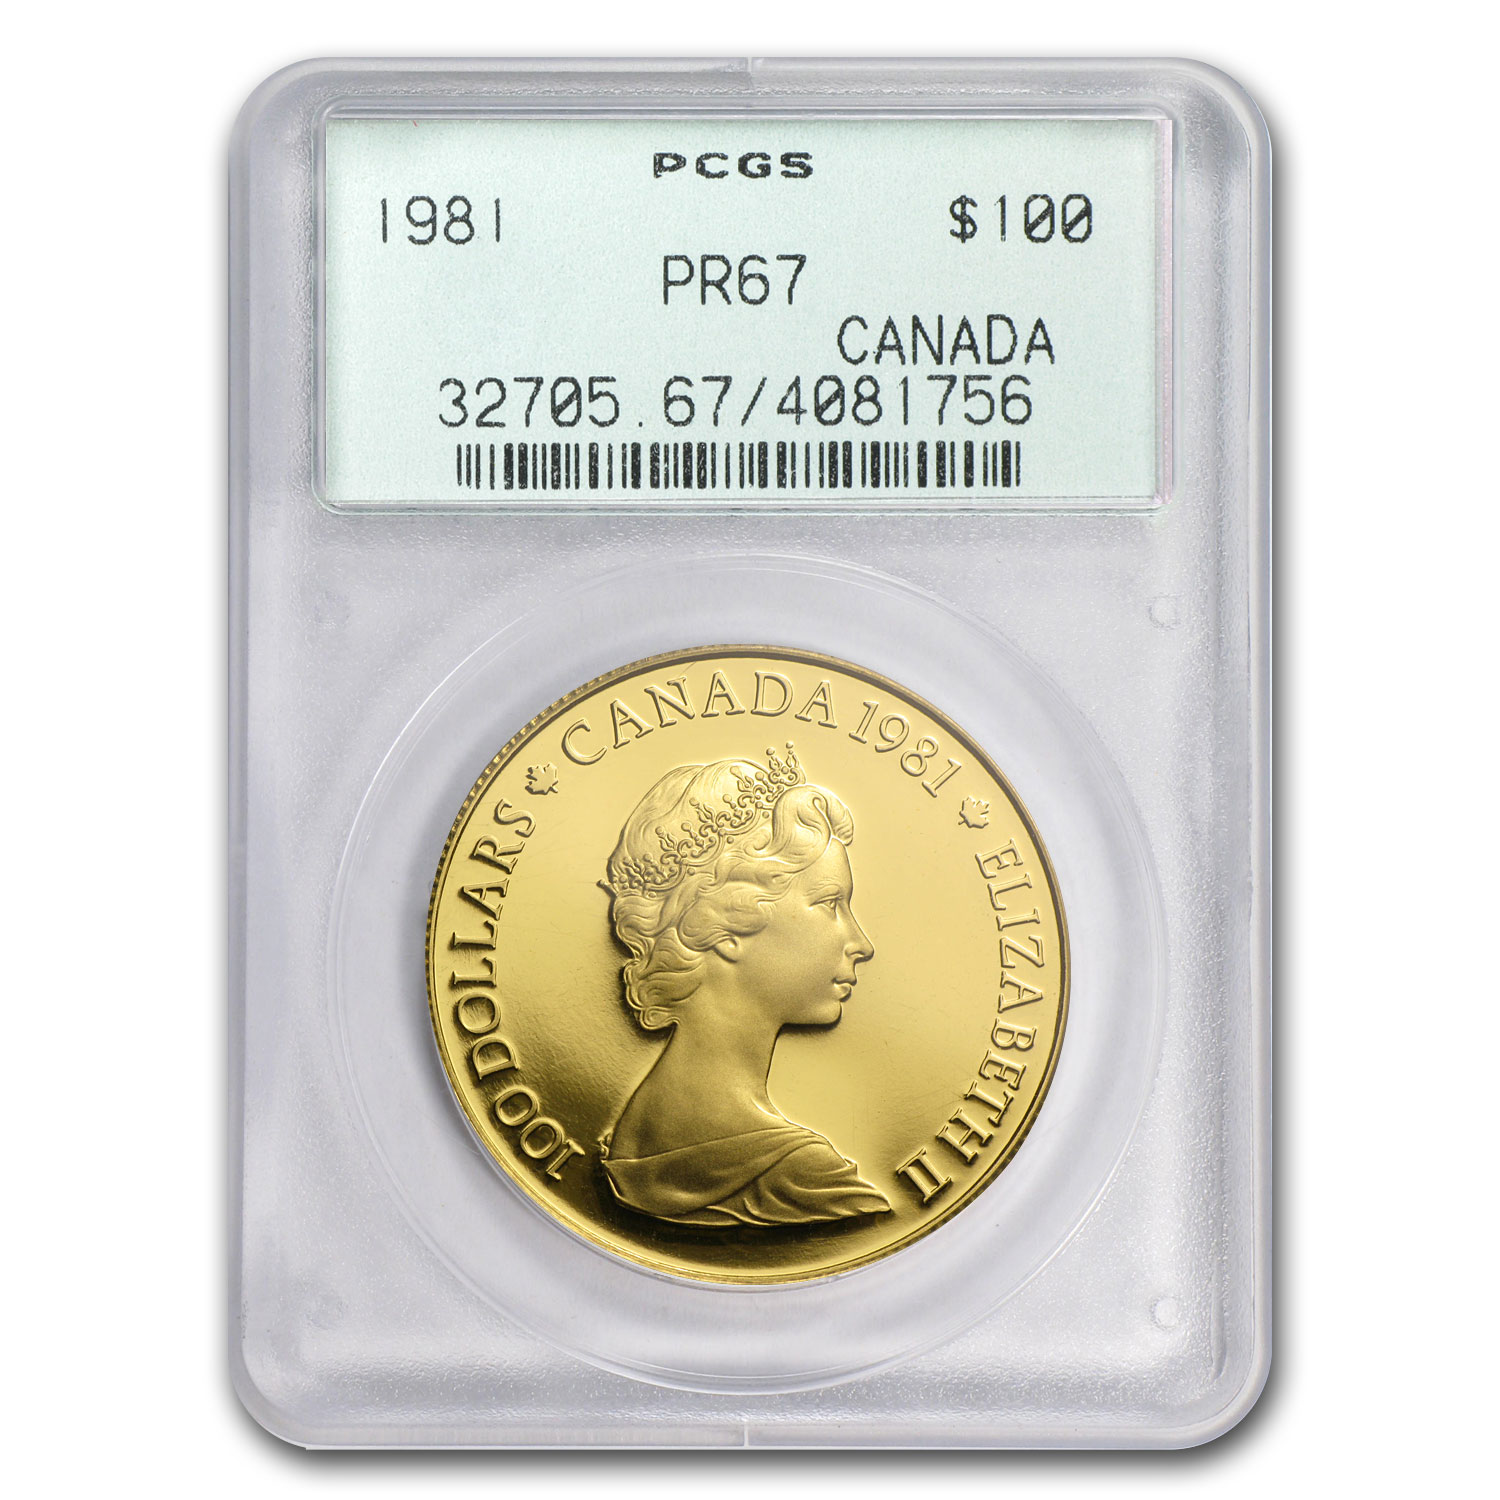 1981 1/2 oz Gold Canadian $100 Proof - National Anthem PR-67 PCGS